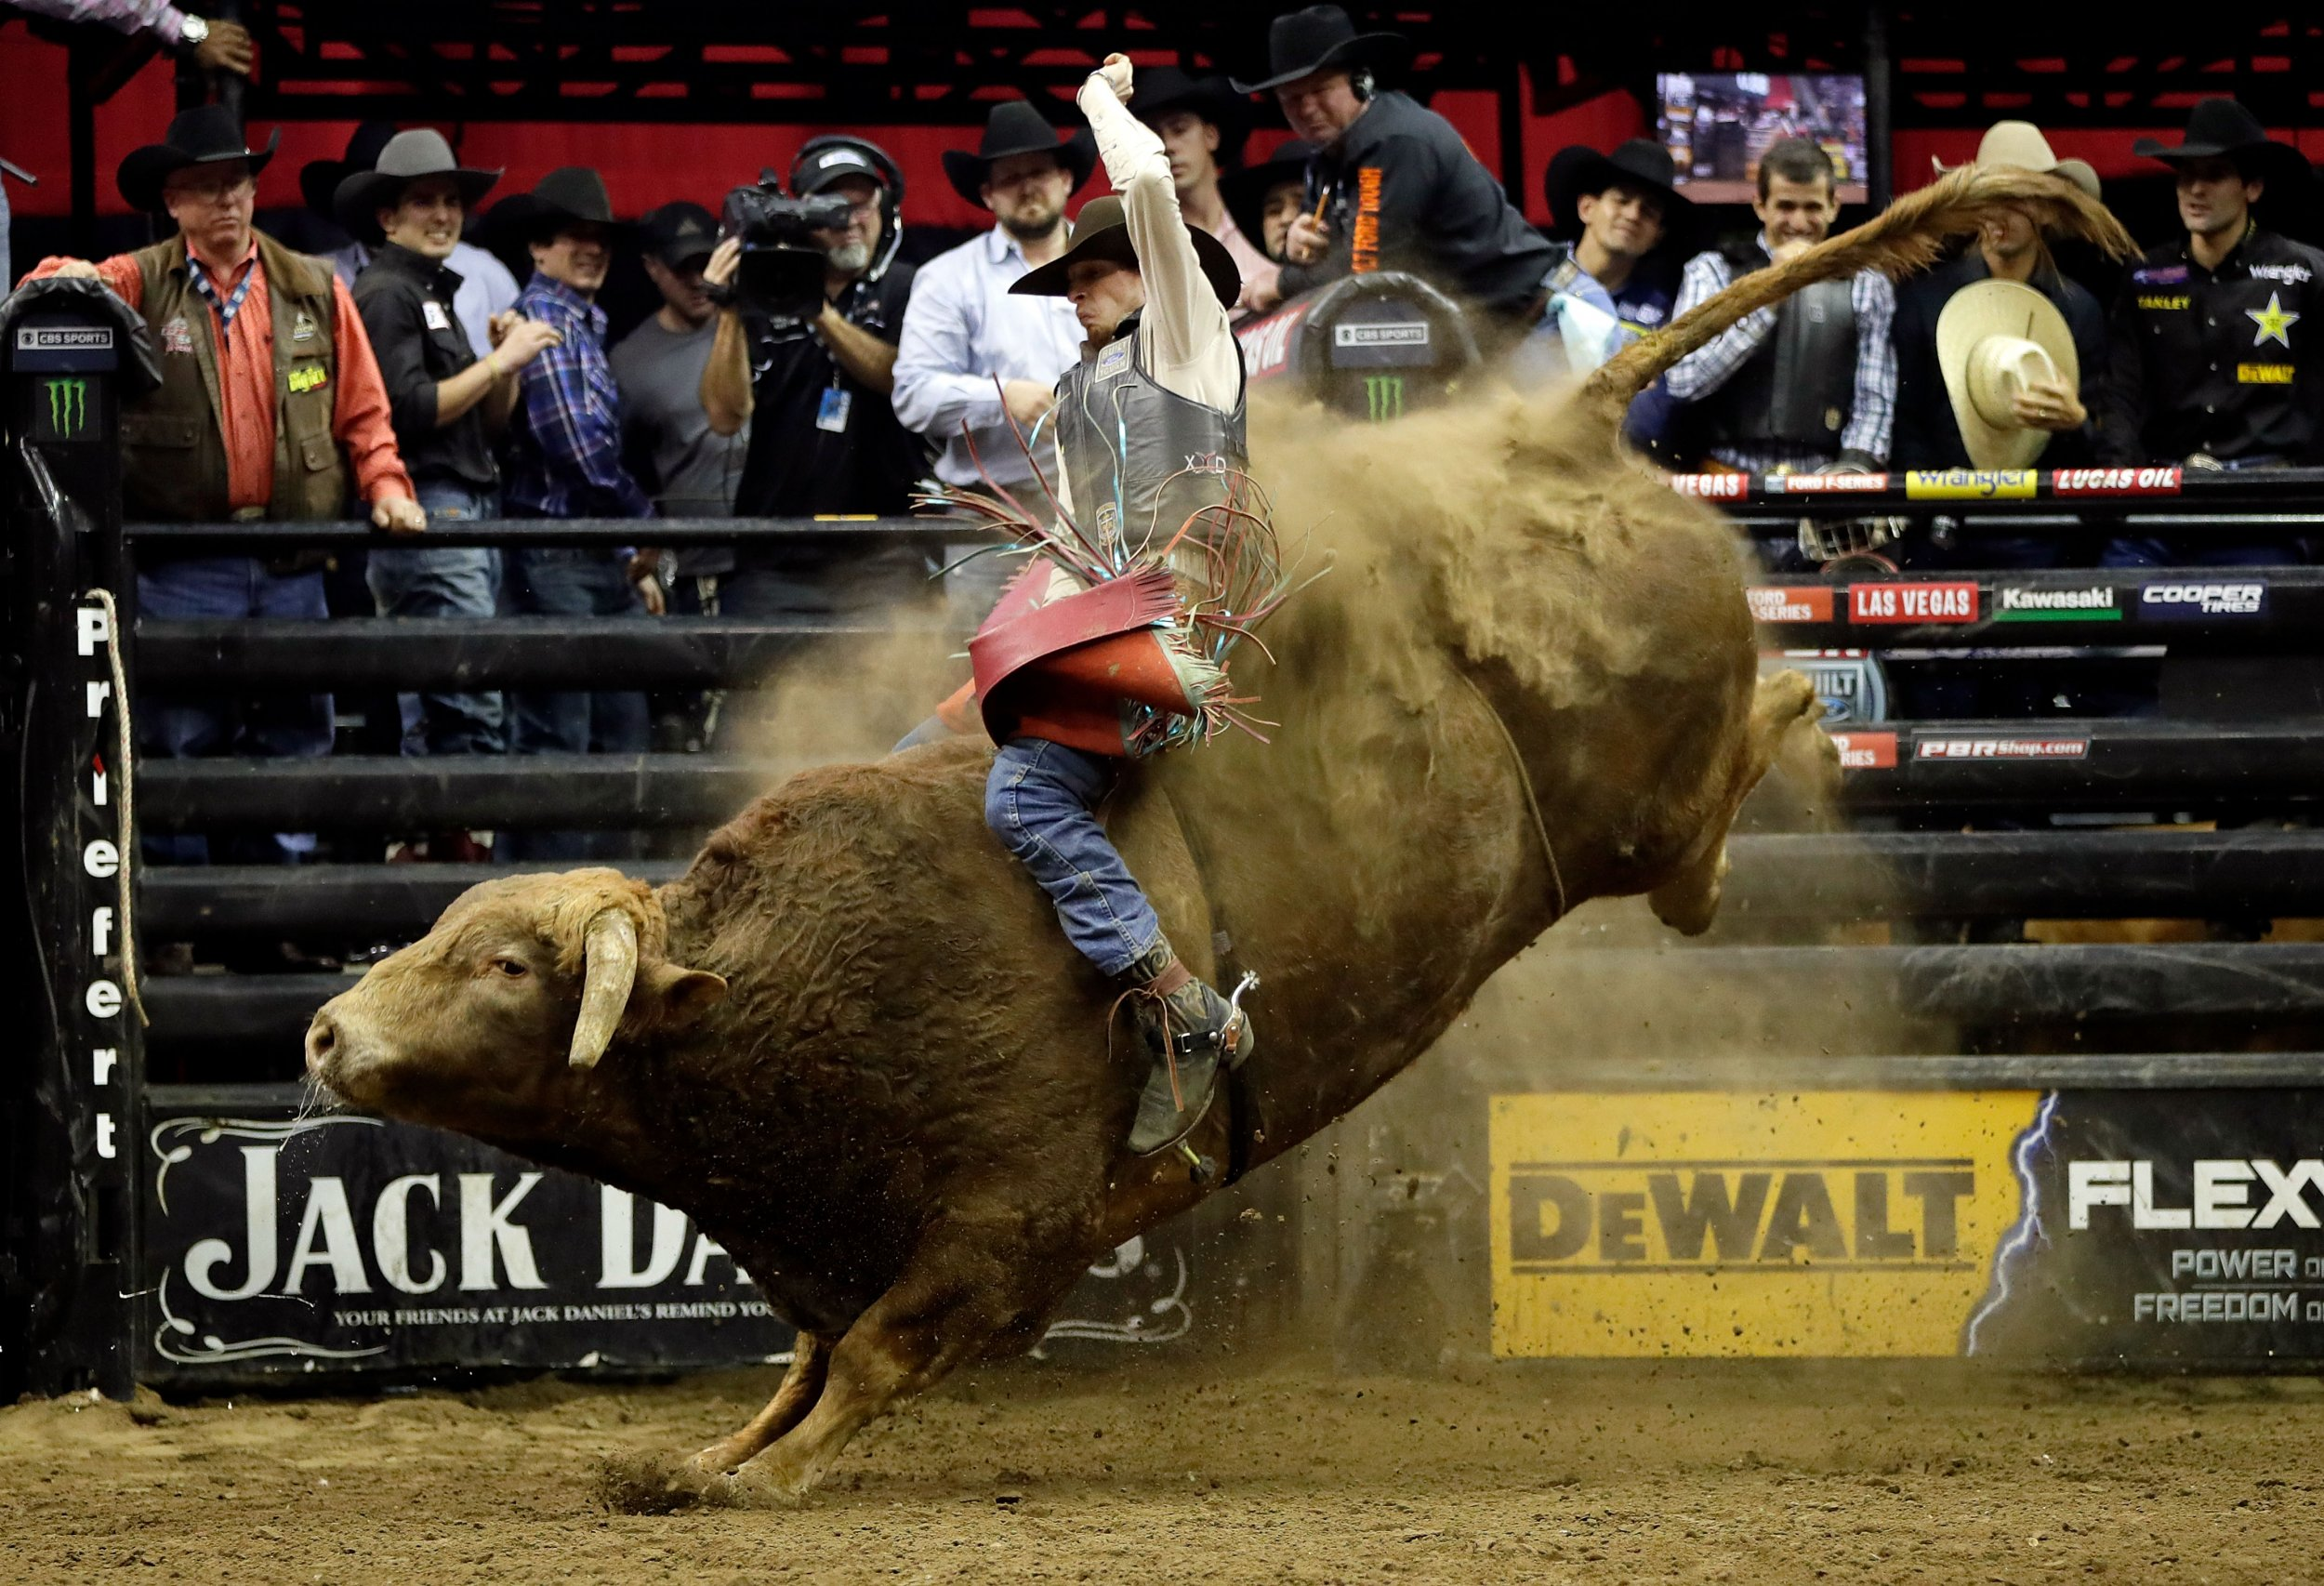 Bull Rider Dies After Being Stamped On By Bull At Denver Rodeo